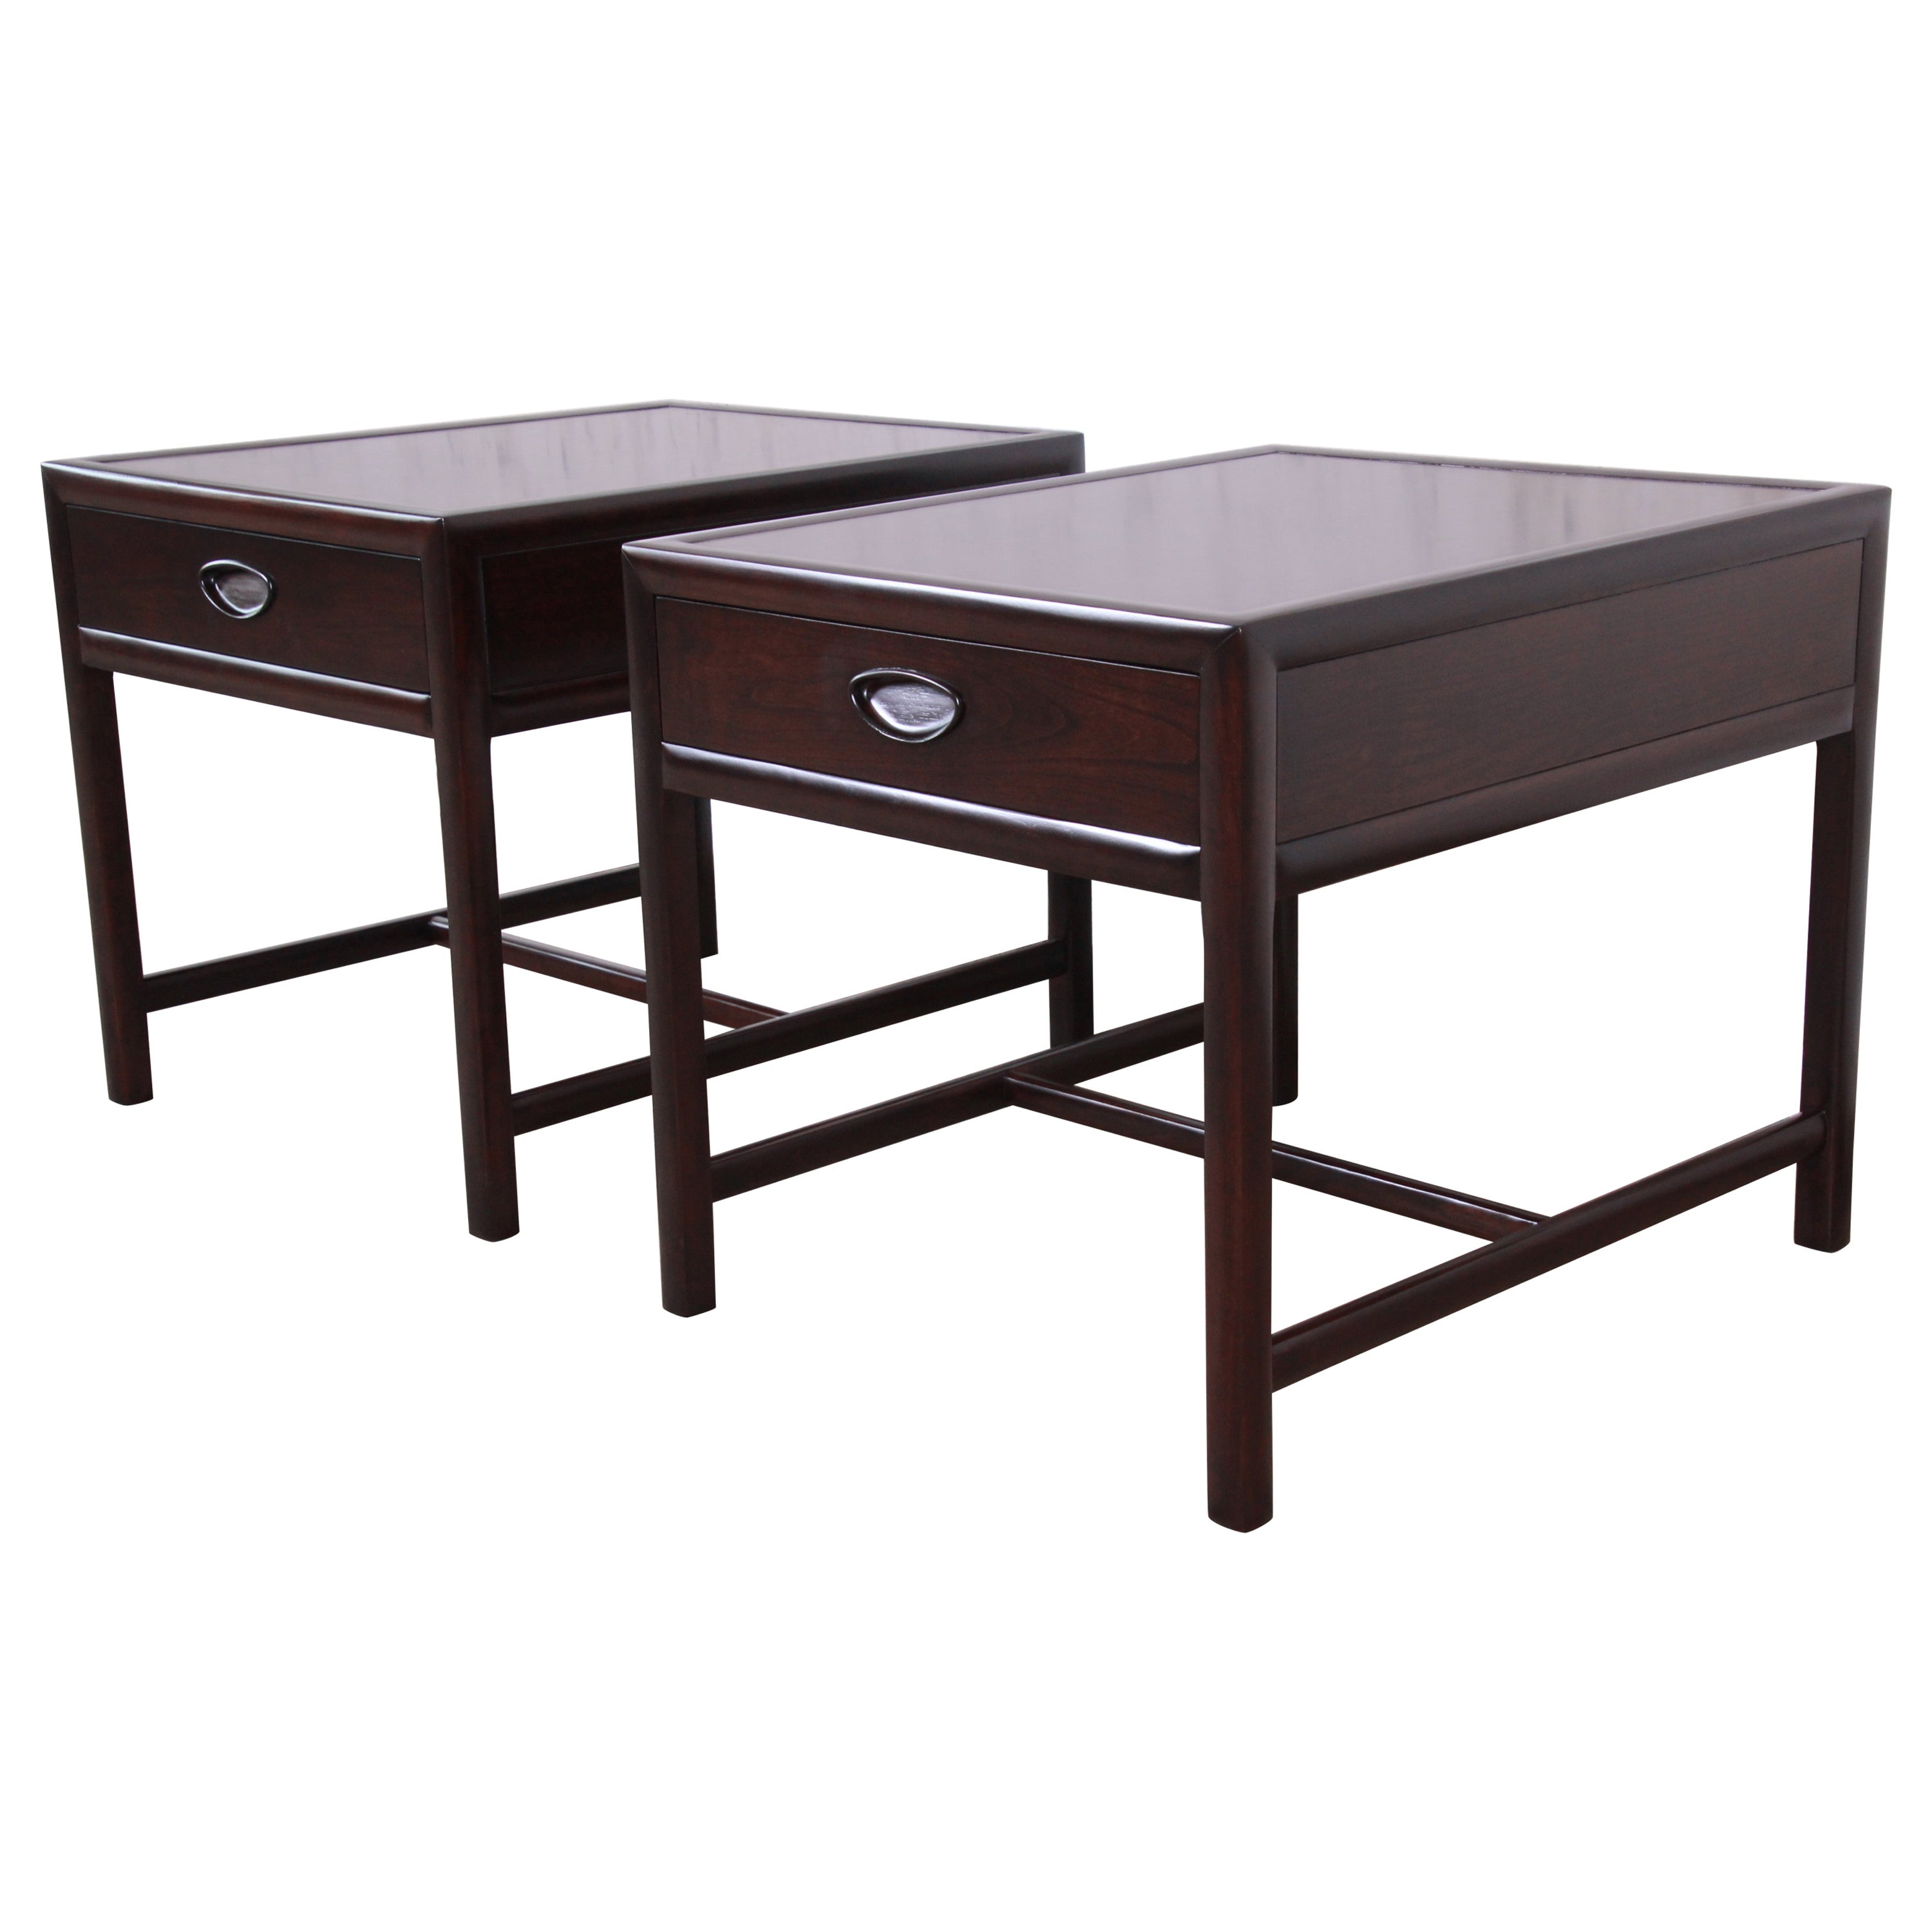 Michael Taylor for Baker Dark Cherry Nightstands or End Tables, Newly Restored